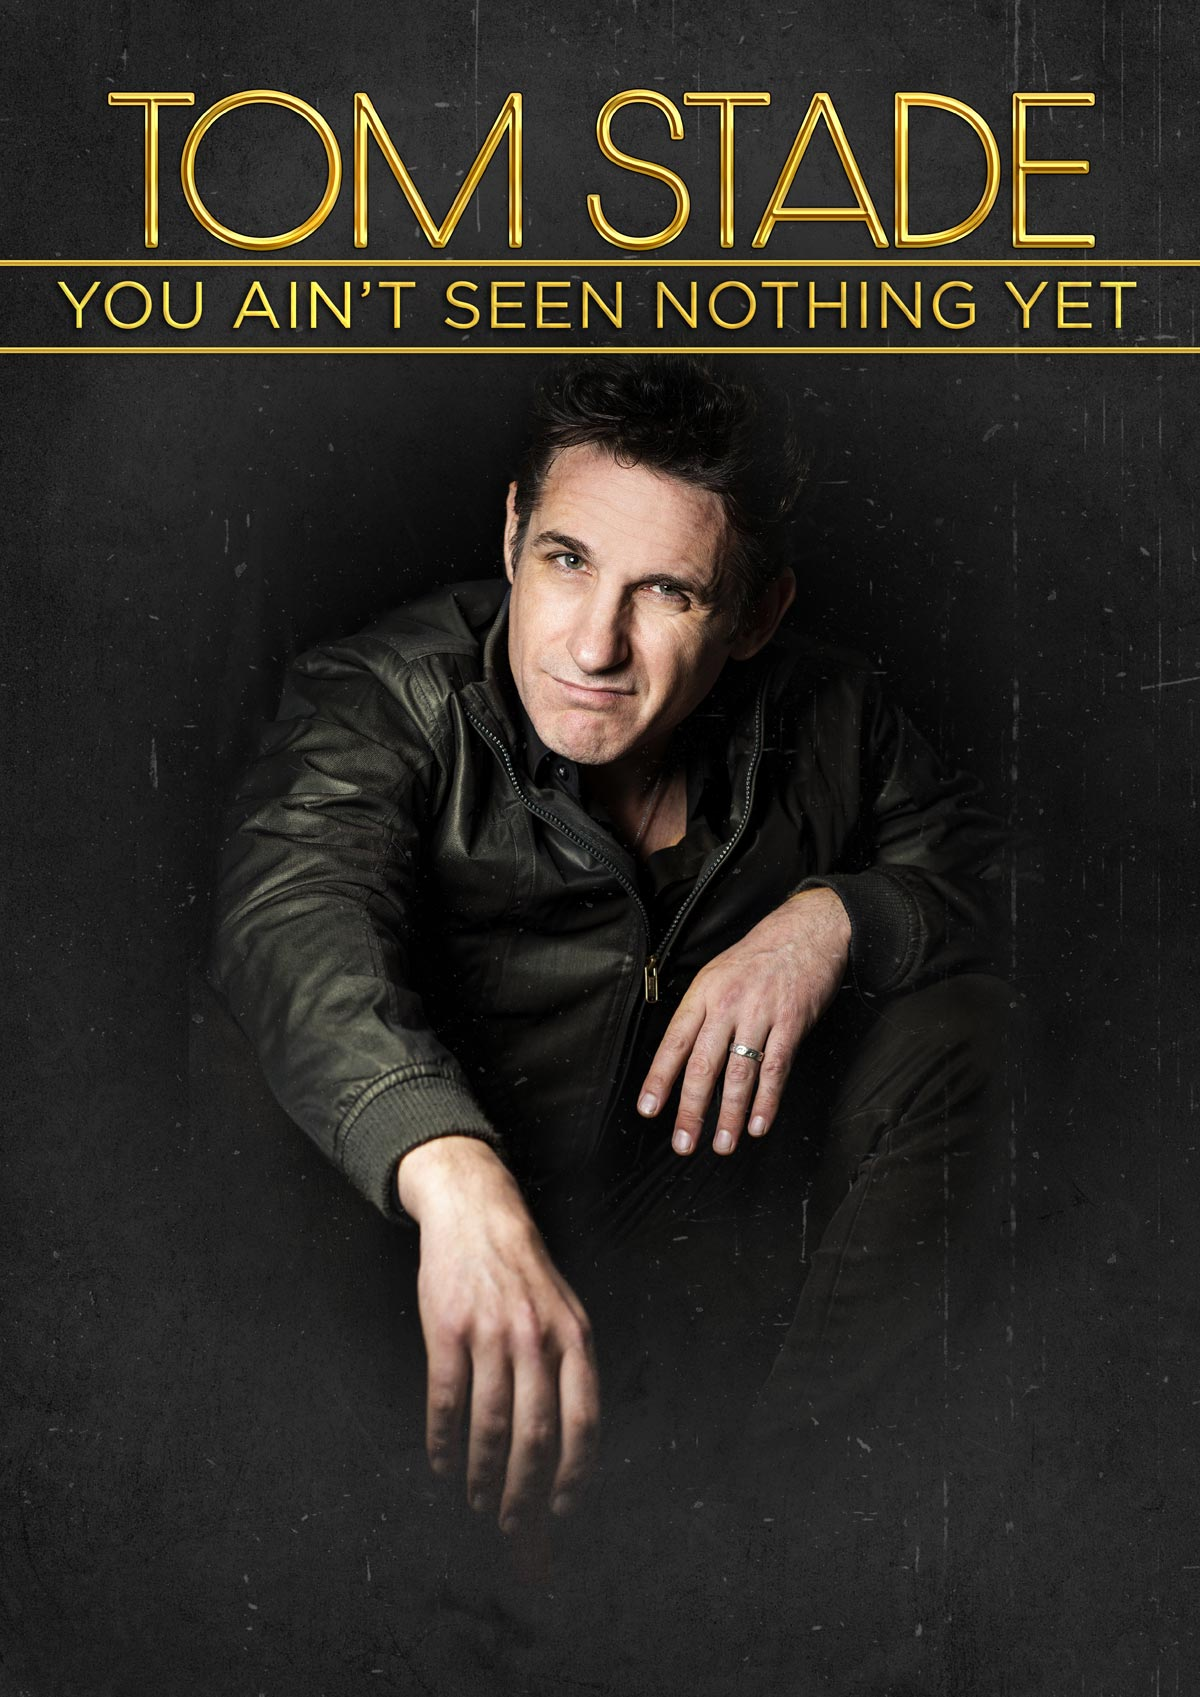 Tom Stade's You Ain't See Nothing Yet